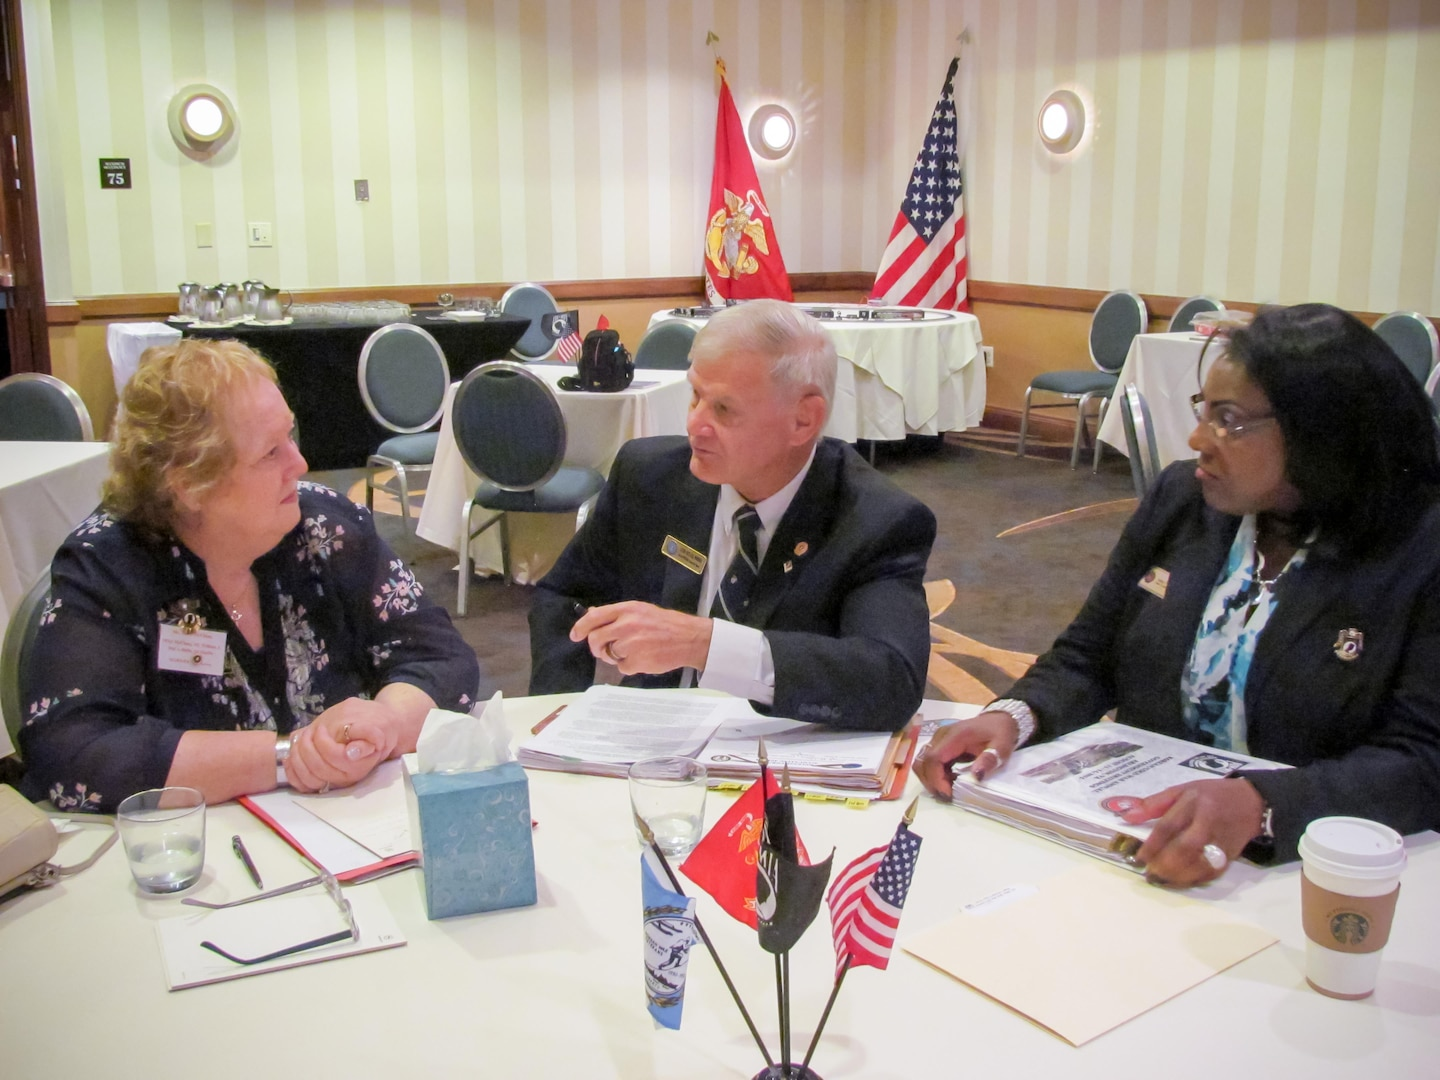 Mary McClung (left), meets with Defense Prisoner of War/Missing in Action Accounting Agency (DPAA) historian, Bill Woodier, and Marine Corps Service Casualty Officer Hatti Johnson, during the Korean/Cold War annual briefings Aug. 13-14, 2015, in Washington, D.C.  McClung spoke with officials regarding her father, Marine Corps Master Sgt. William J. McClung III, who was also a World War II veteran. Government officials from DPAA met with more than 300 family members of servicemen who went missing during past conflicts. Representatives from the U.S. government's personnel accounting community provided one-on-one case-specific, detailed information to family members and briefed them on the government's efforts to account for their loved ones, including briefings on government policy, remains recovery operations and methods of identifying remains.